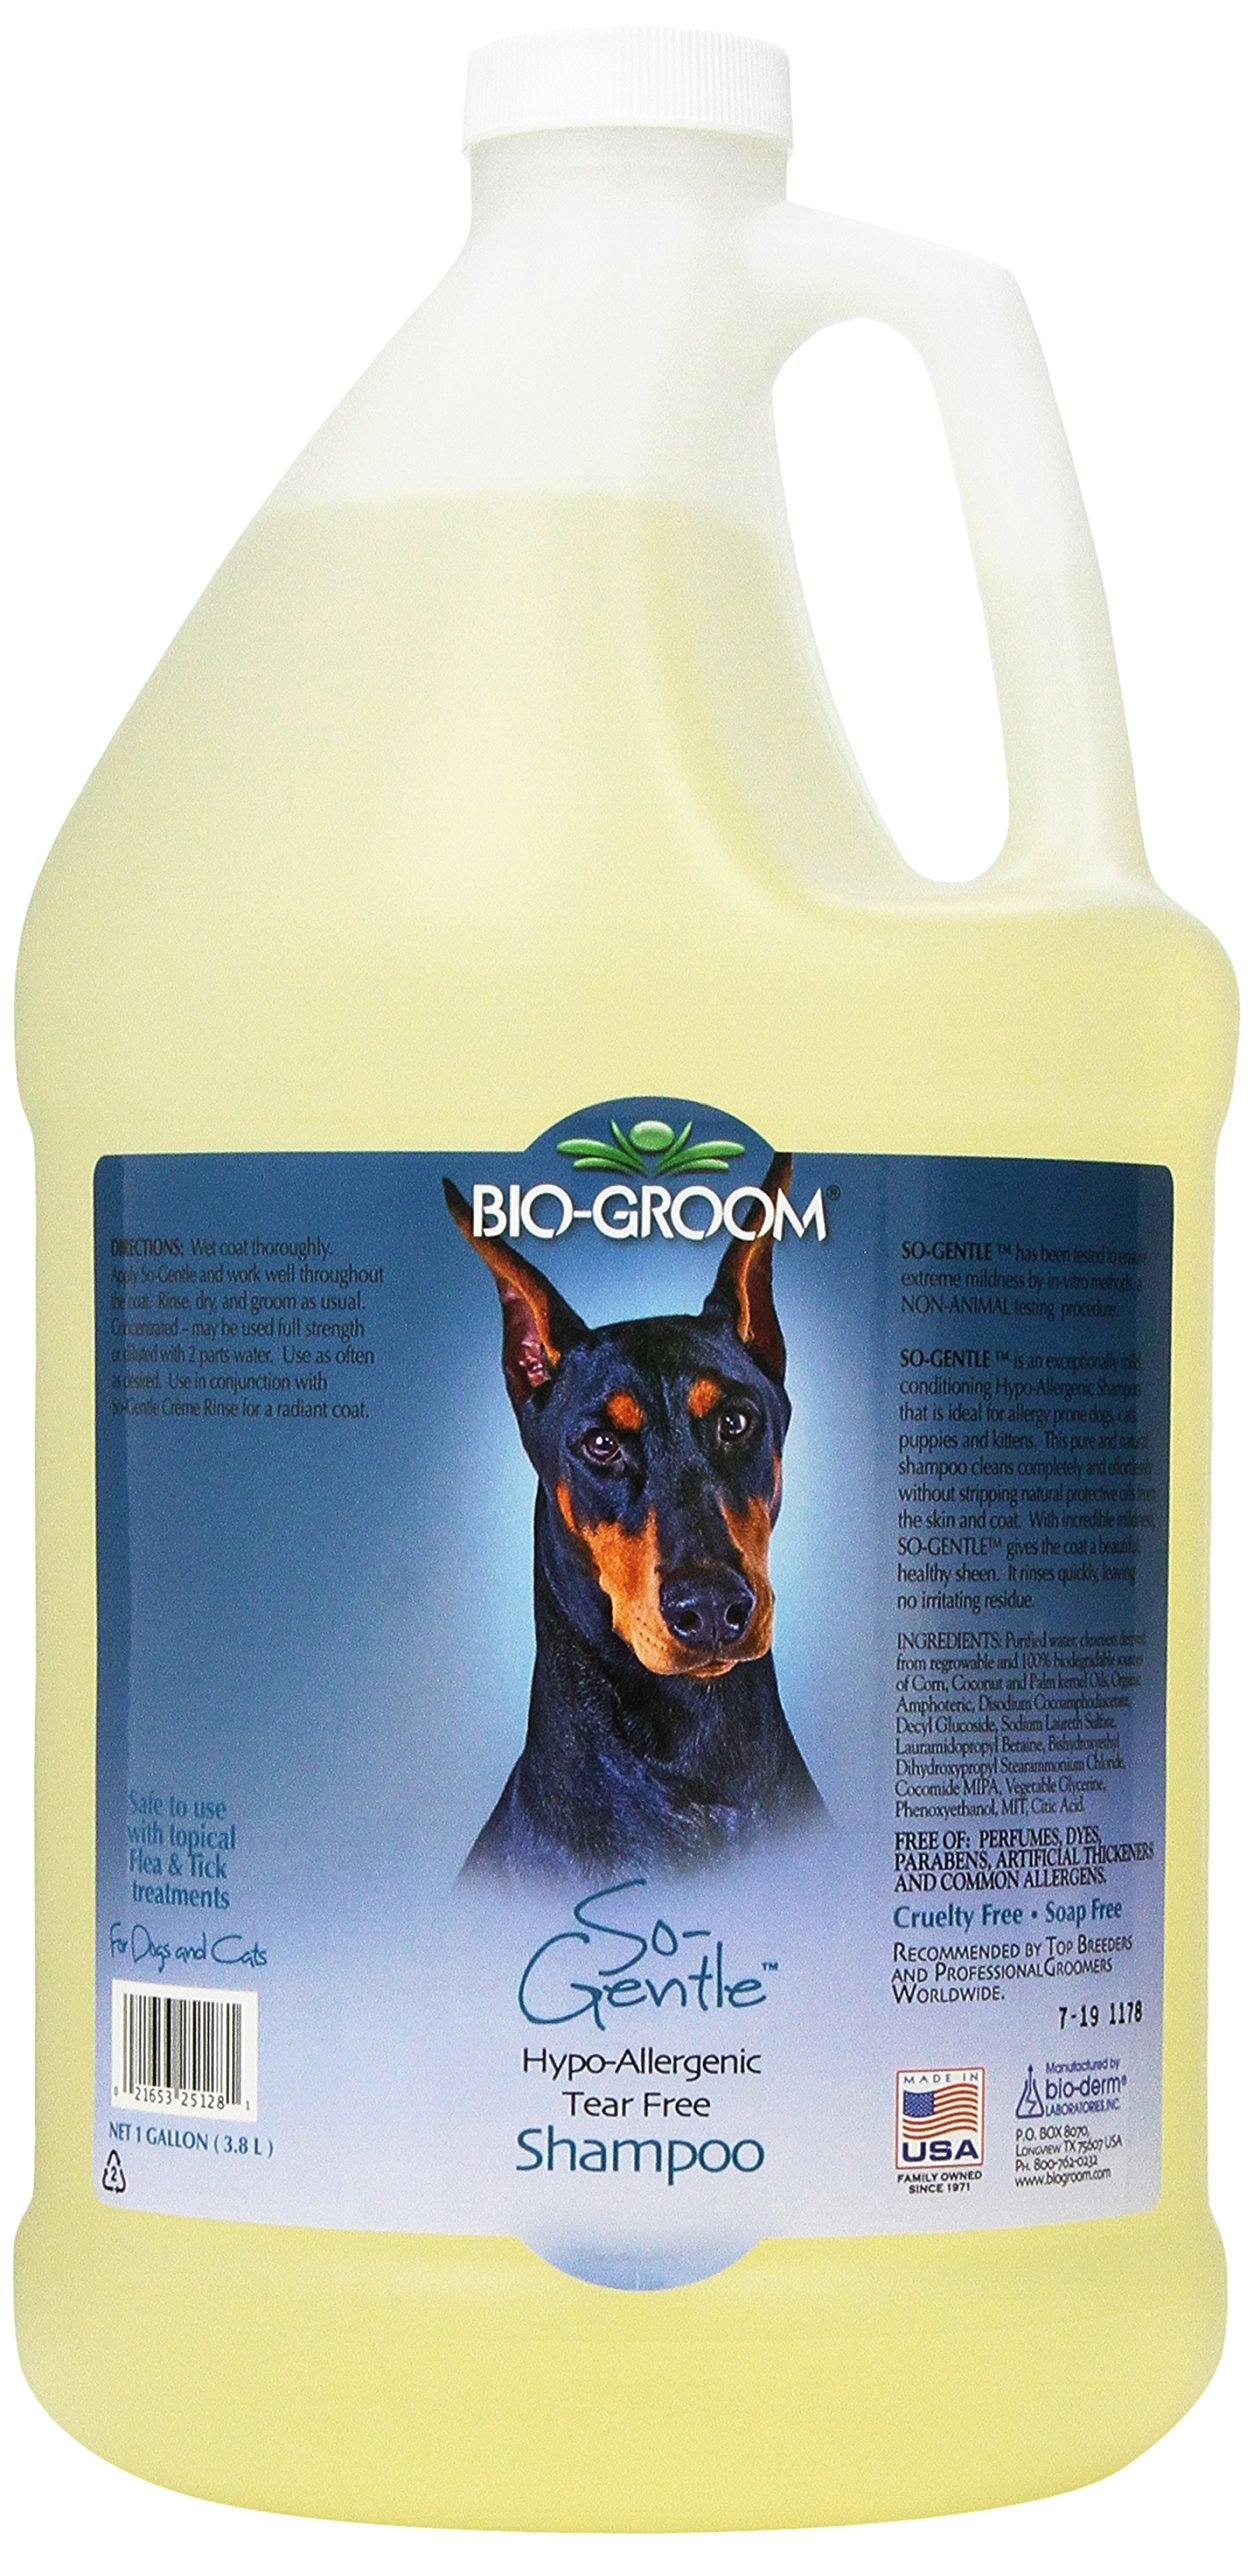 Bio-groom So-Gentle Hypo-Allergenic Pet Shampoo, 1-Gallon by Bio-groom